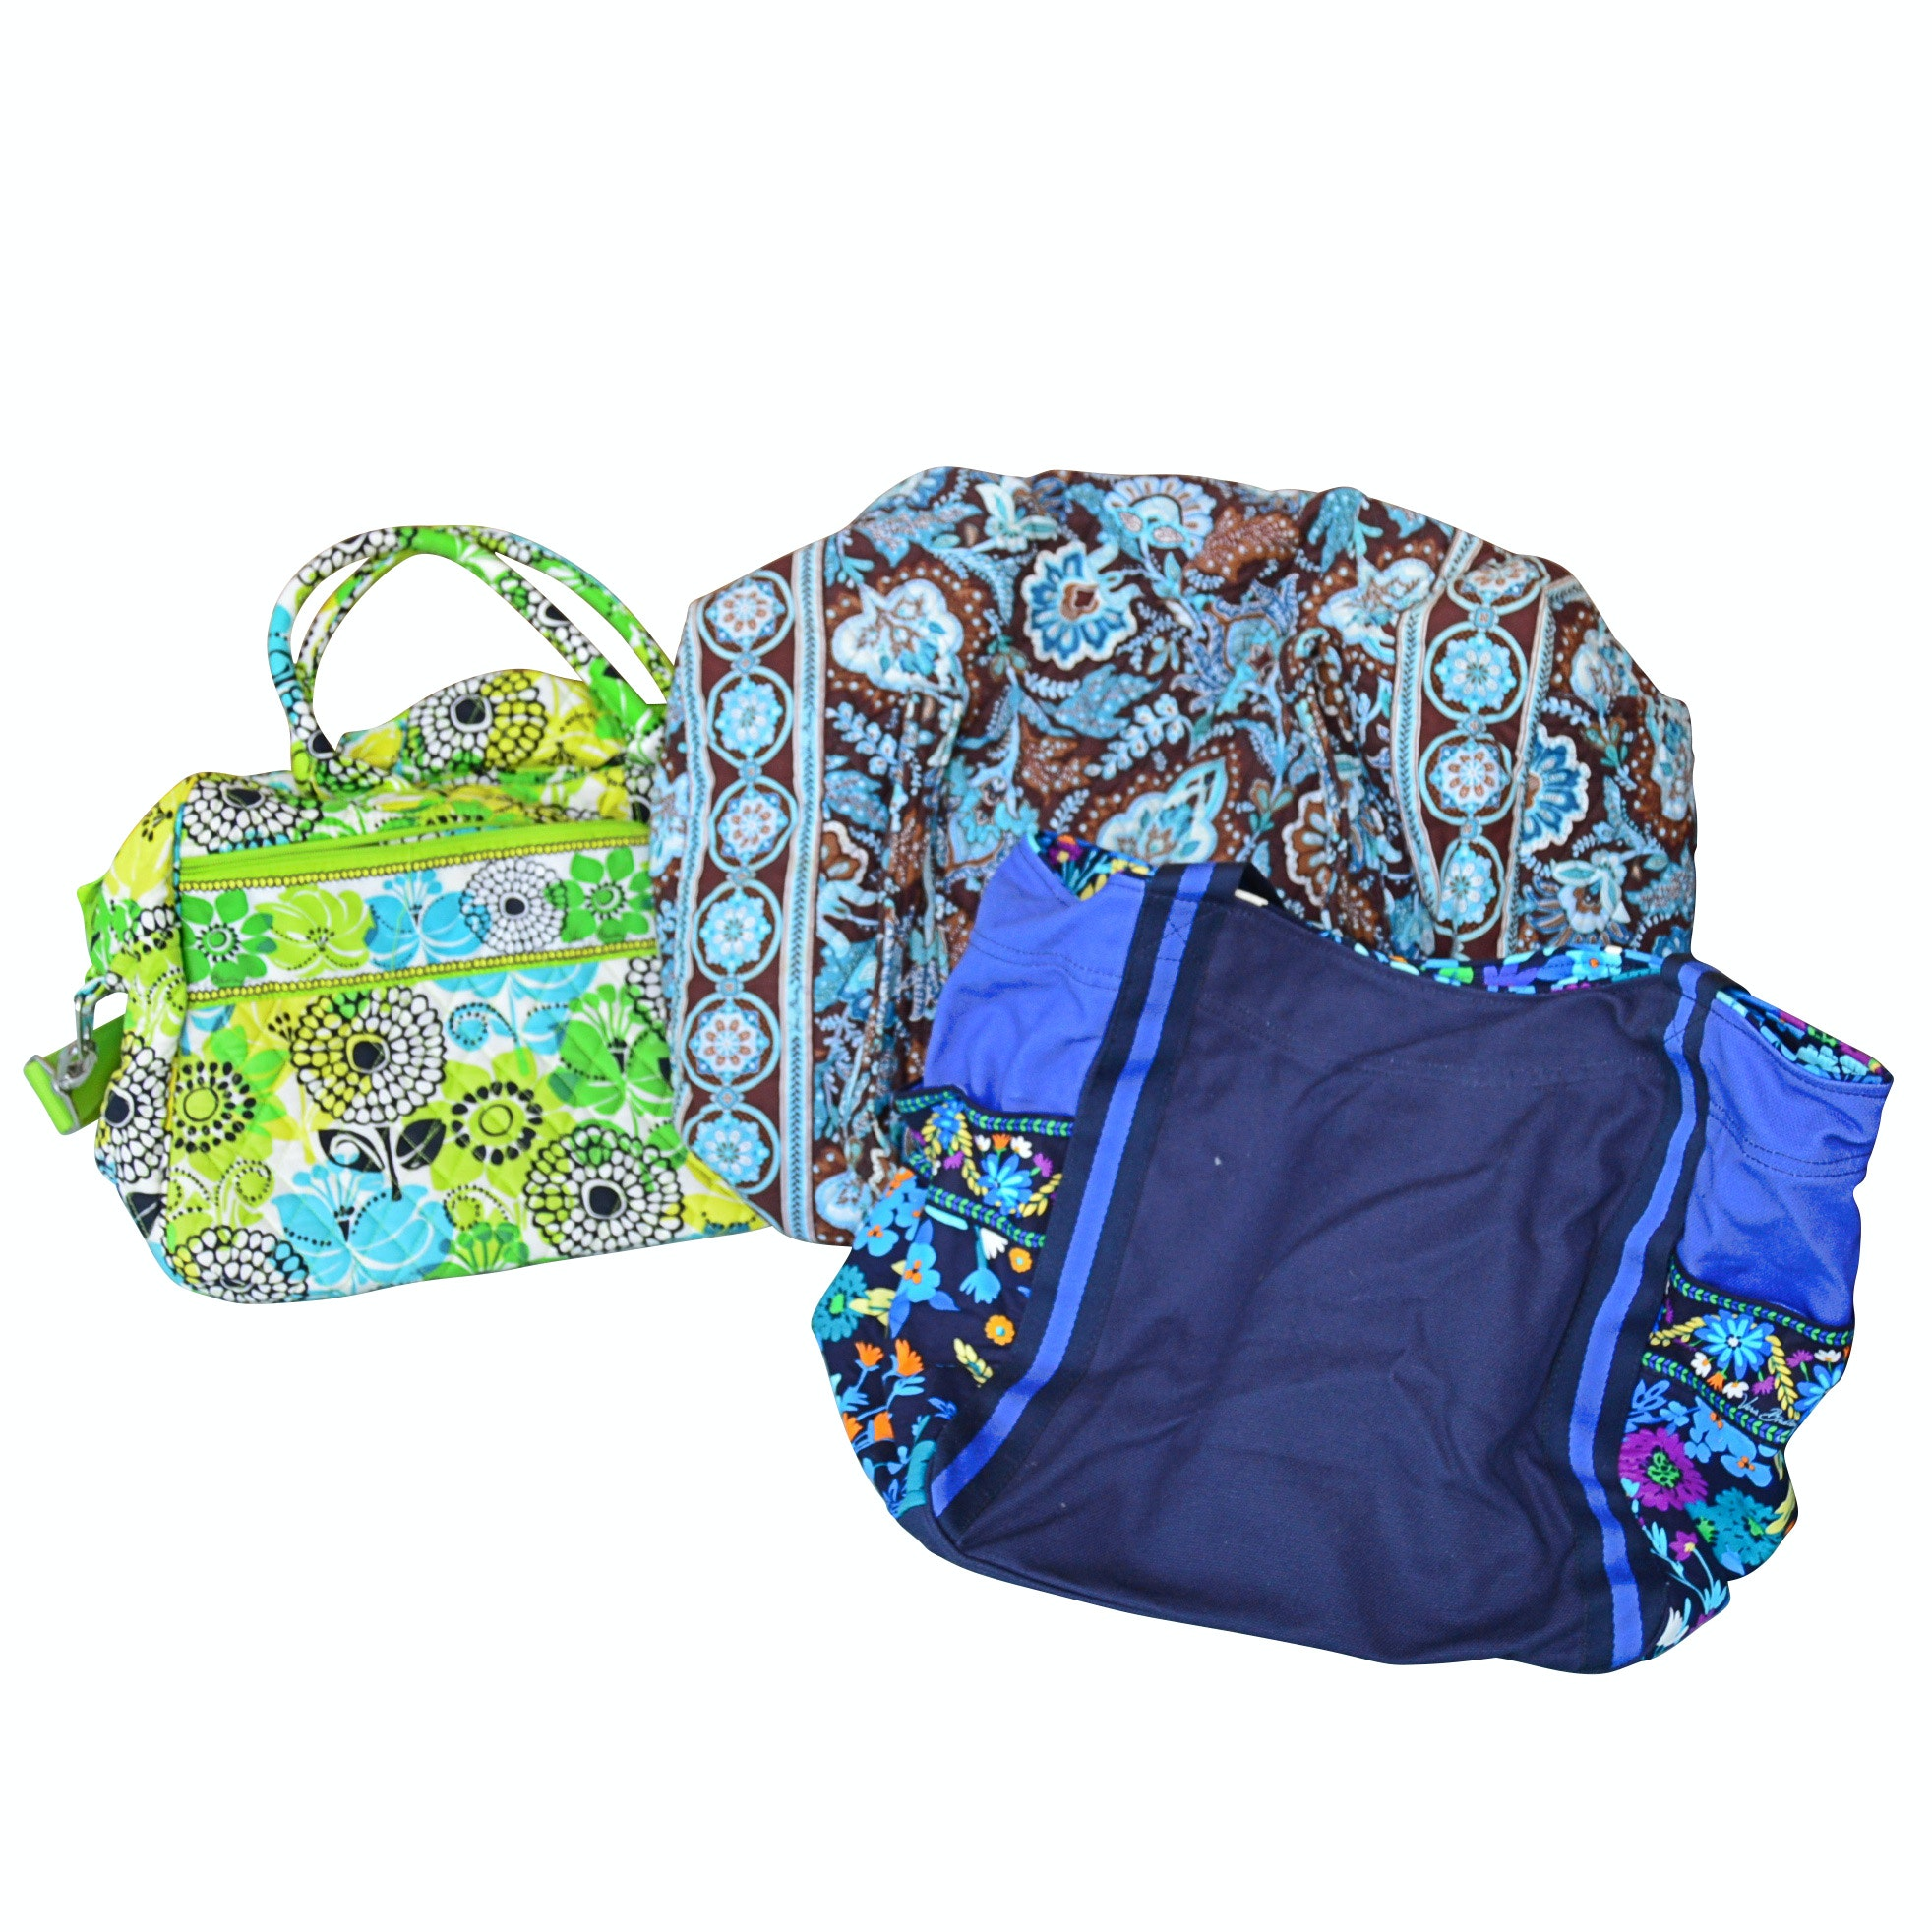 Vera Bradley Cotton Floral Totes and Duffel Bag